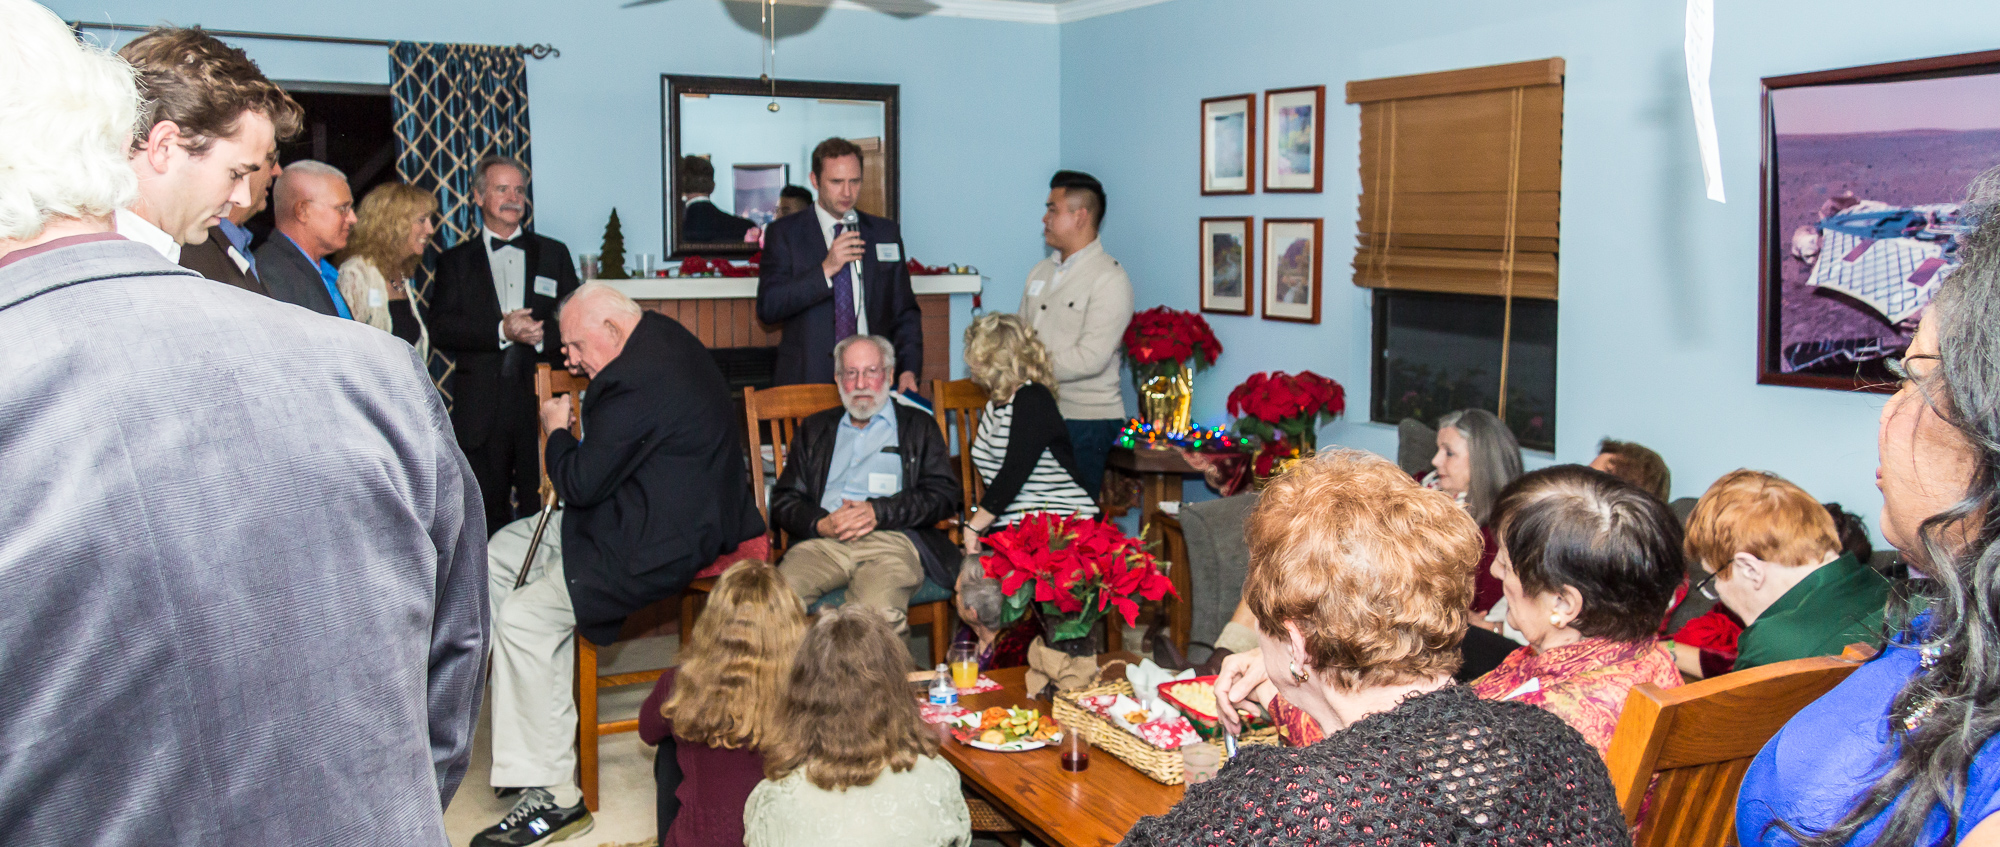 Westchester-Playa Democratic Club Holiday Party 2015 -32.jpg